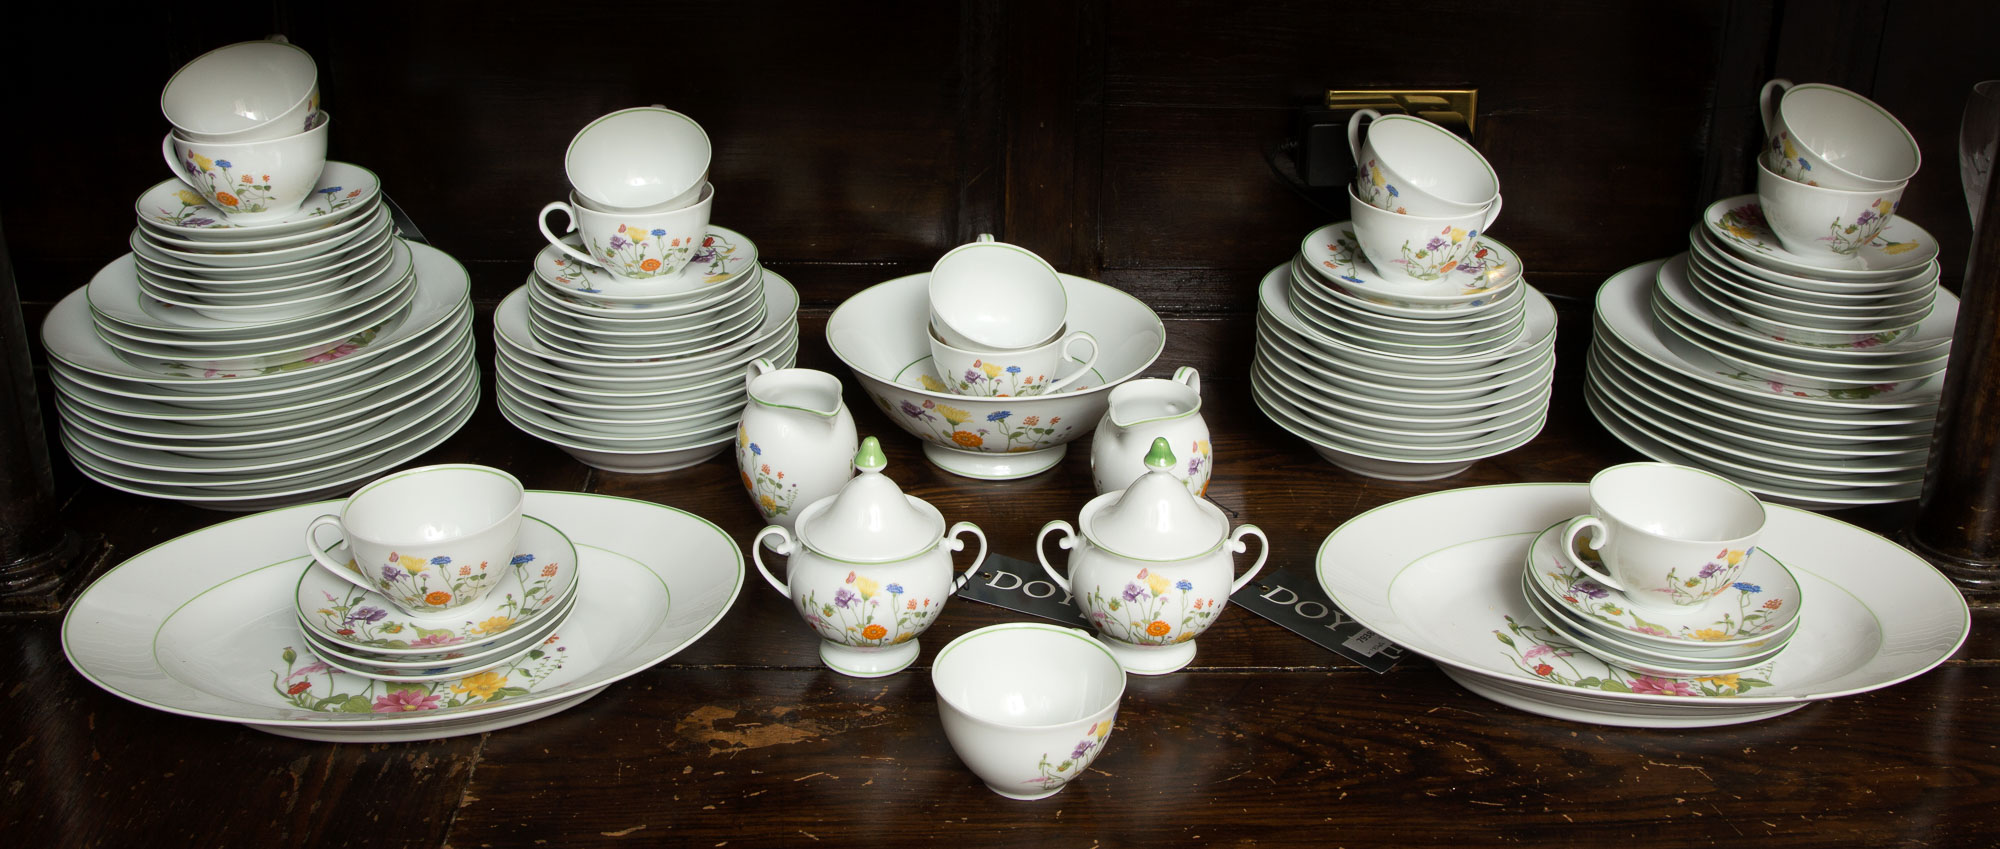 Lot image - Denby Floral Decorated Bone China Partial Dinner Service